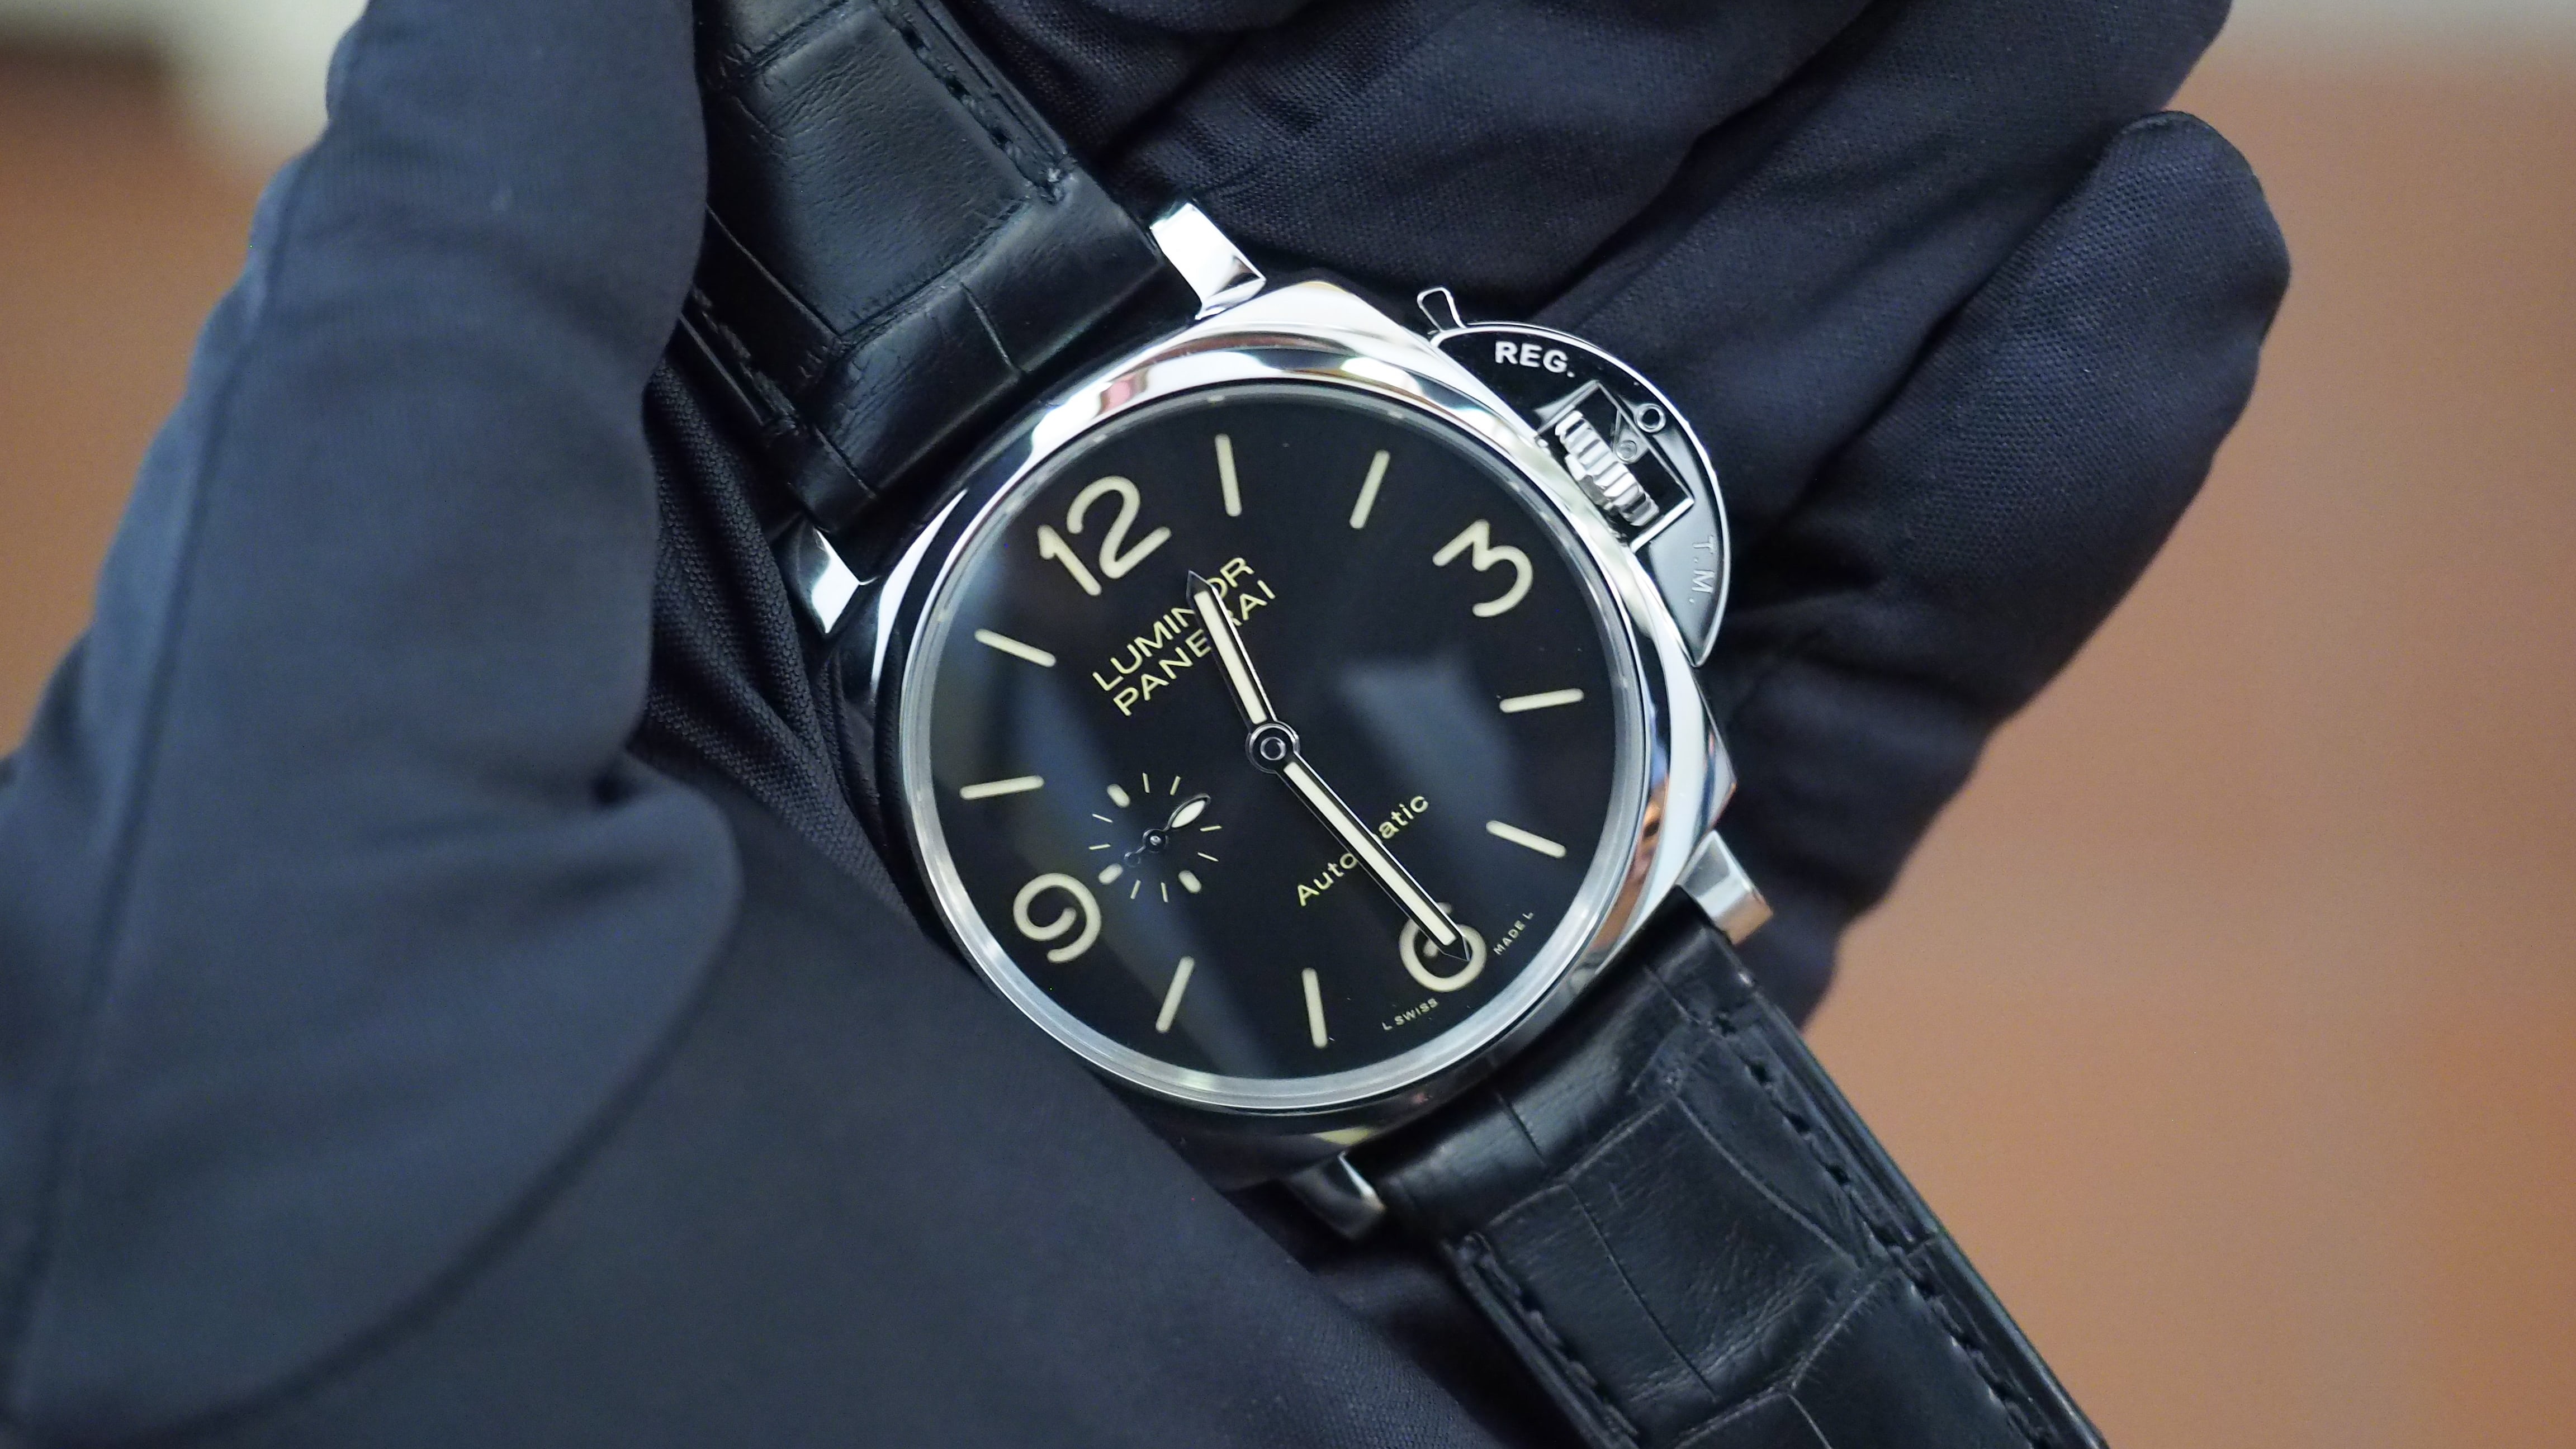 introducing the new panerai luminor due watches officially